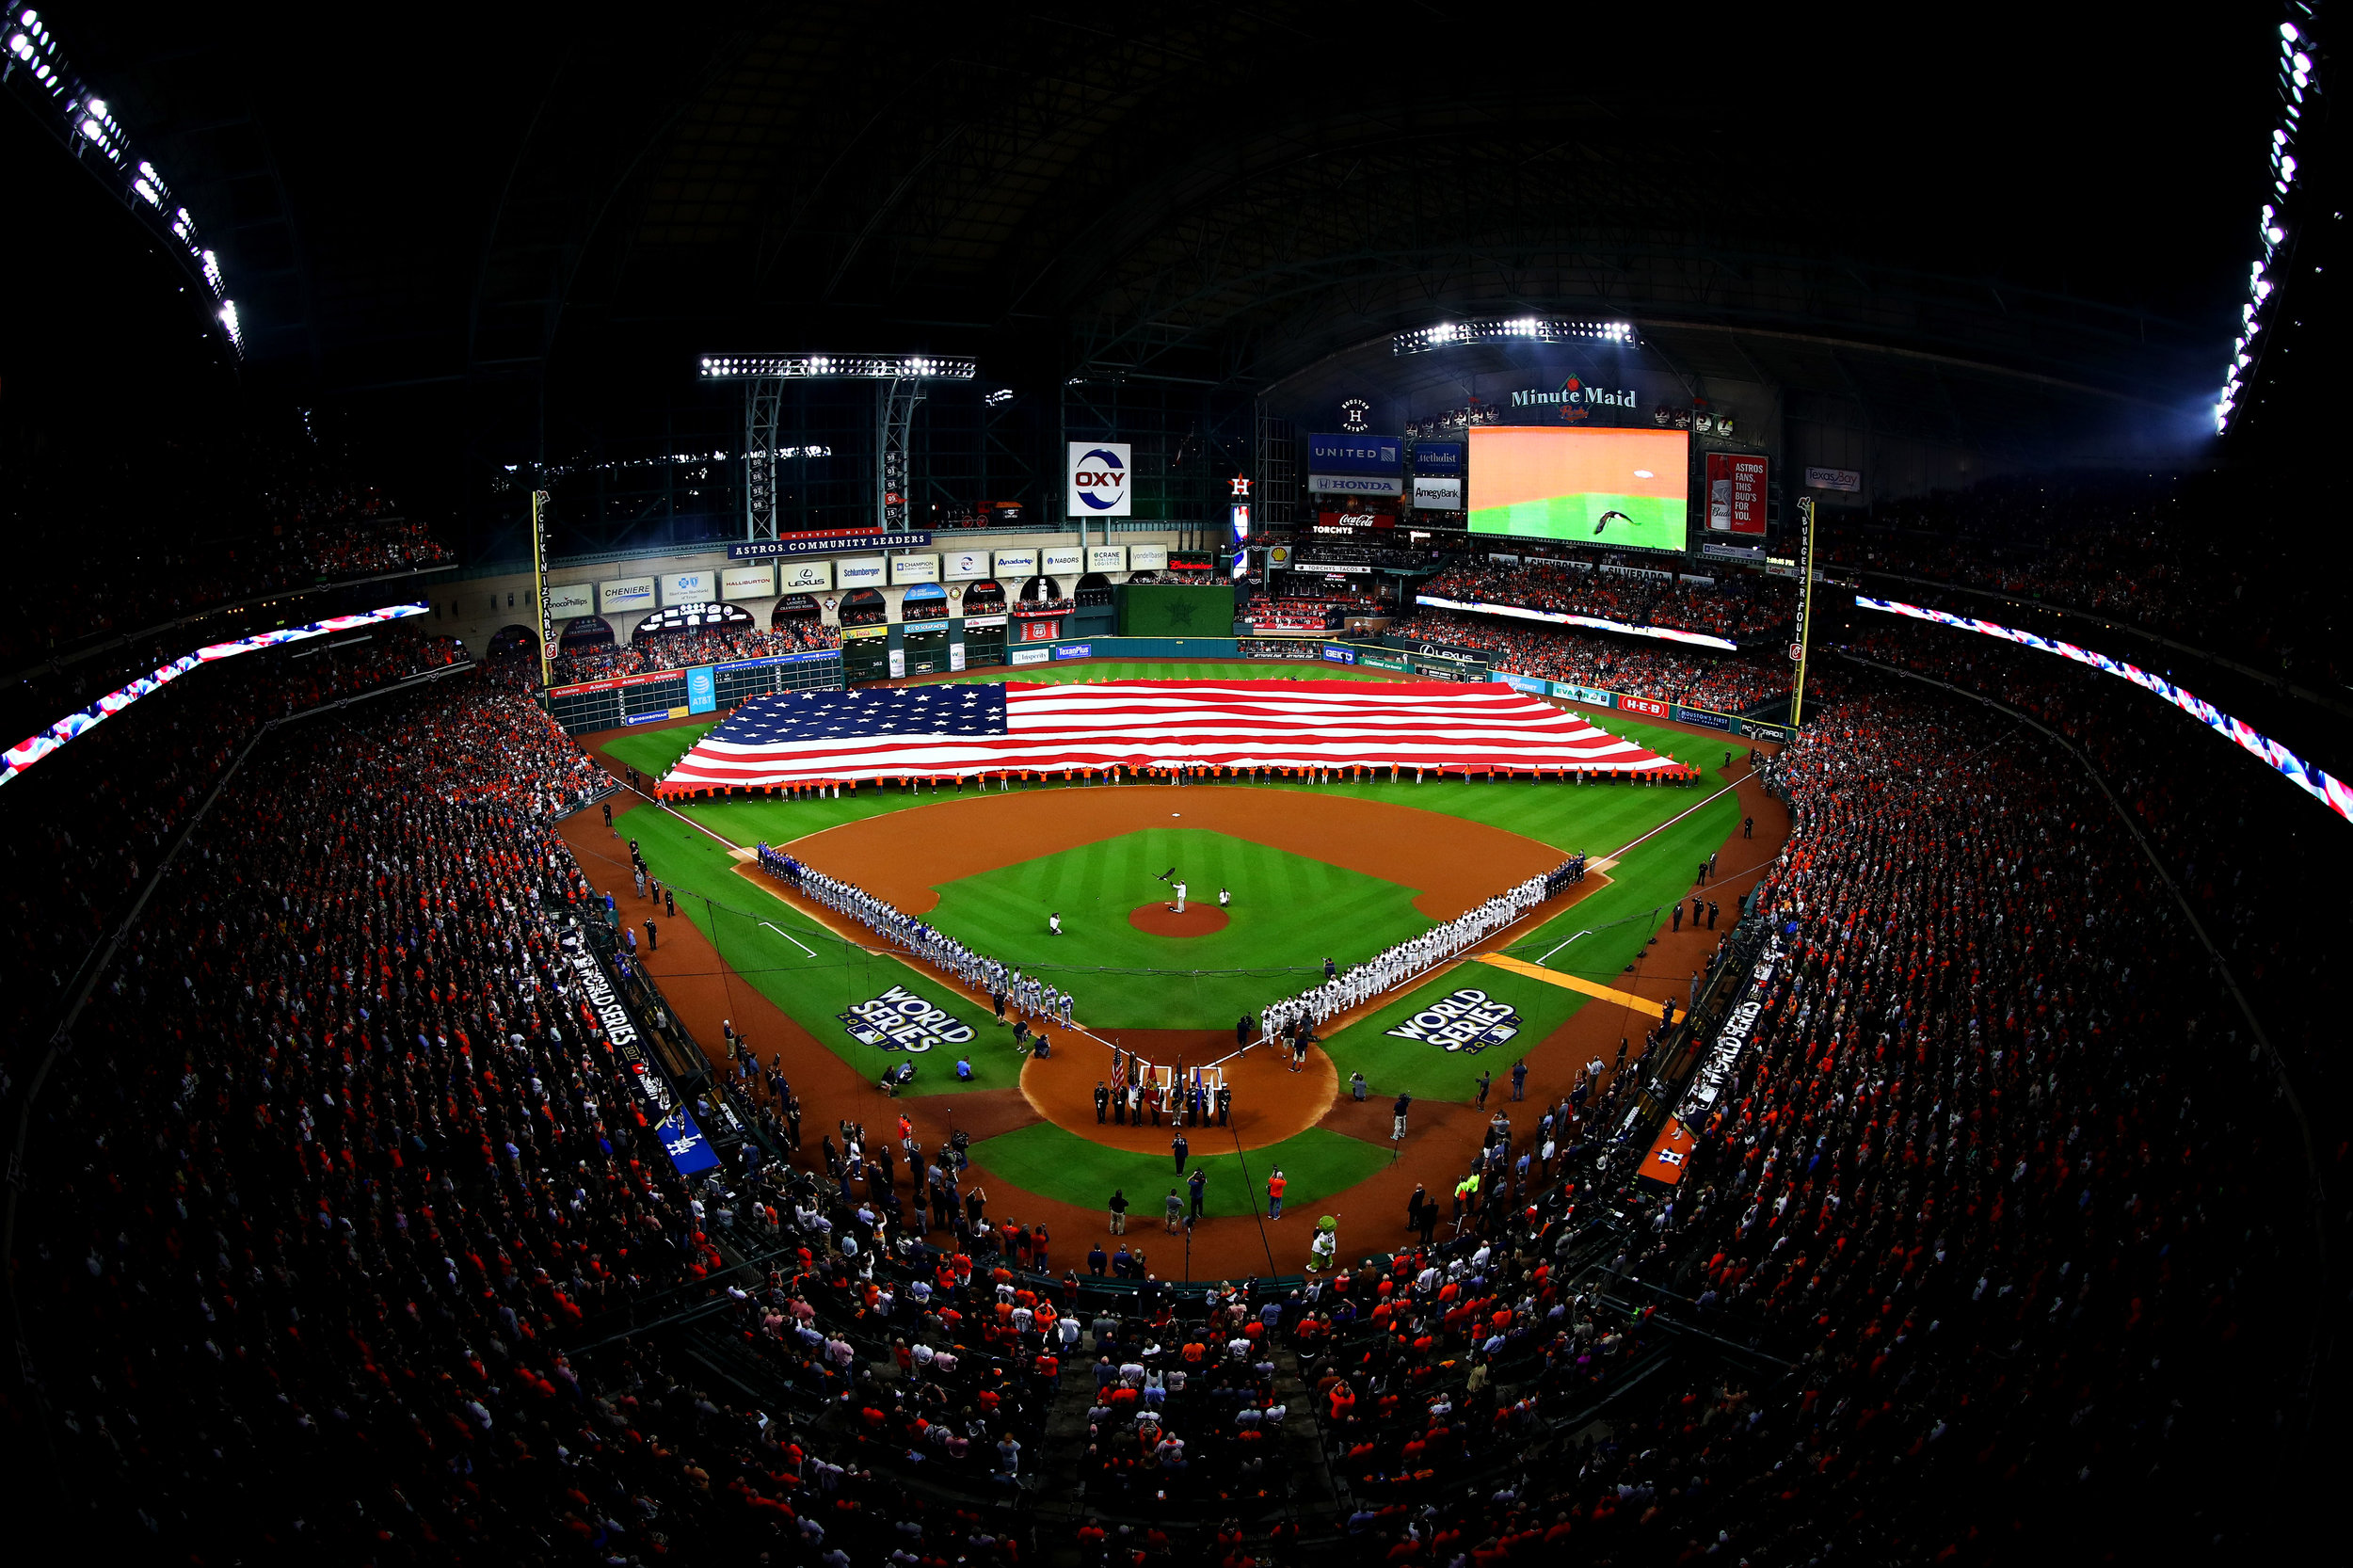 HOUSTON, TX - OCTOBER 27: A general view of the American flag as the national anthem is performed before game three of the 2017 World Series between the Houston Astros and the Los Angeles Dodgers at Minute Maid Park on October 27, 2017 in Houston, Texas. (Photo by Tim Bradbury/Getty Images)